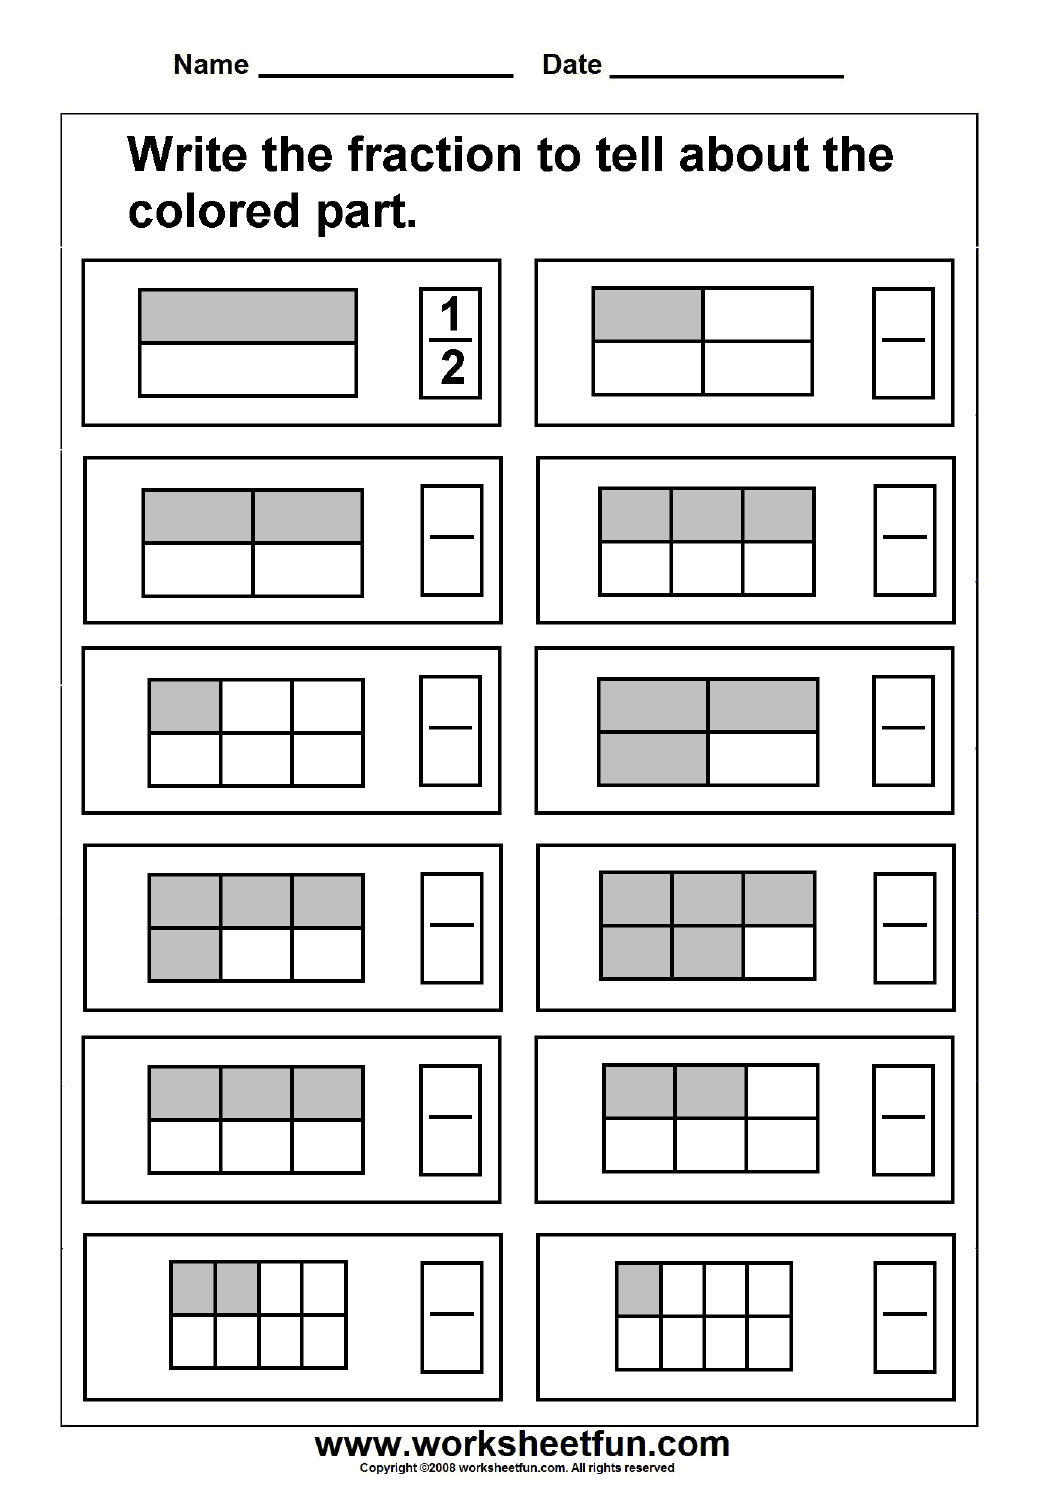 fraction  free printable worksheets  worksheetfun fraction  model   worksheets